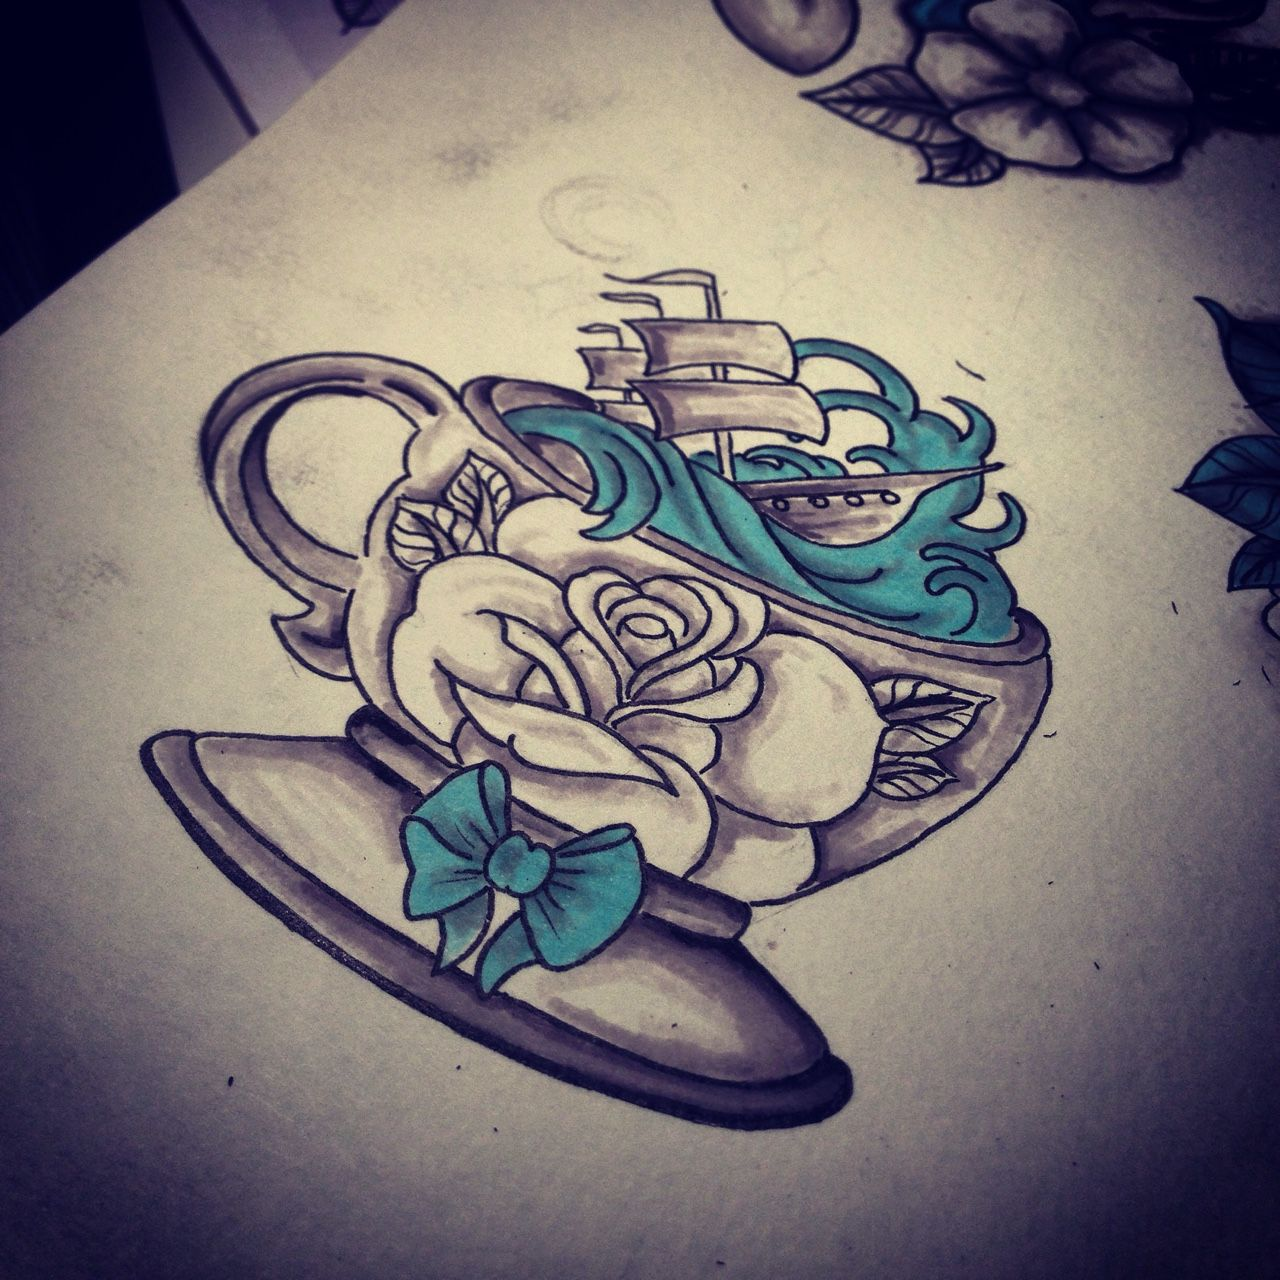 storm in a teacup tattoo | Tattoo ideas | Pinterest | Inspiration